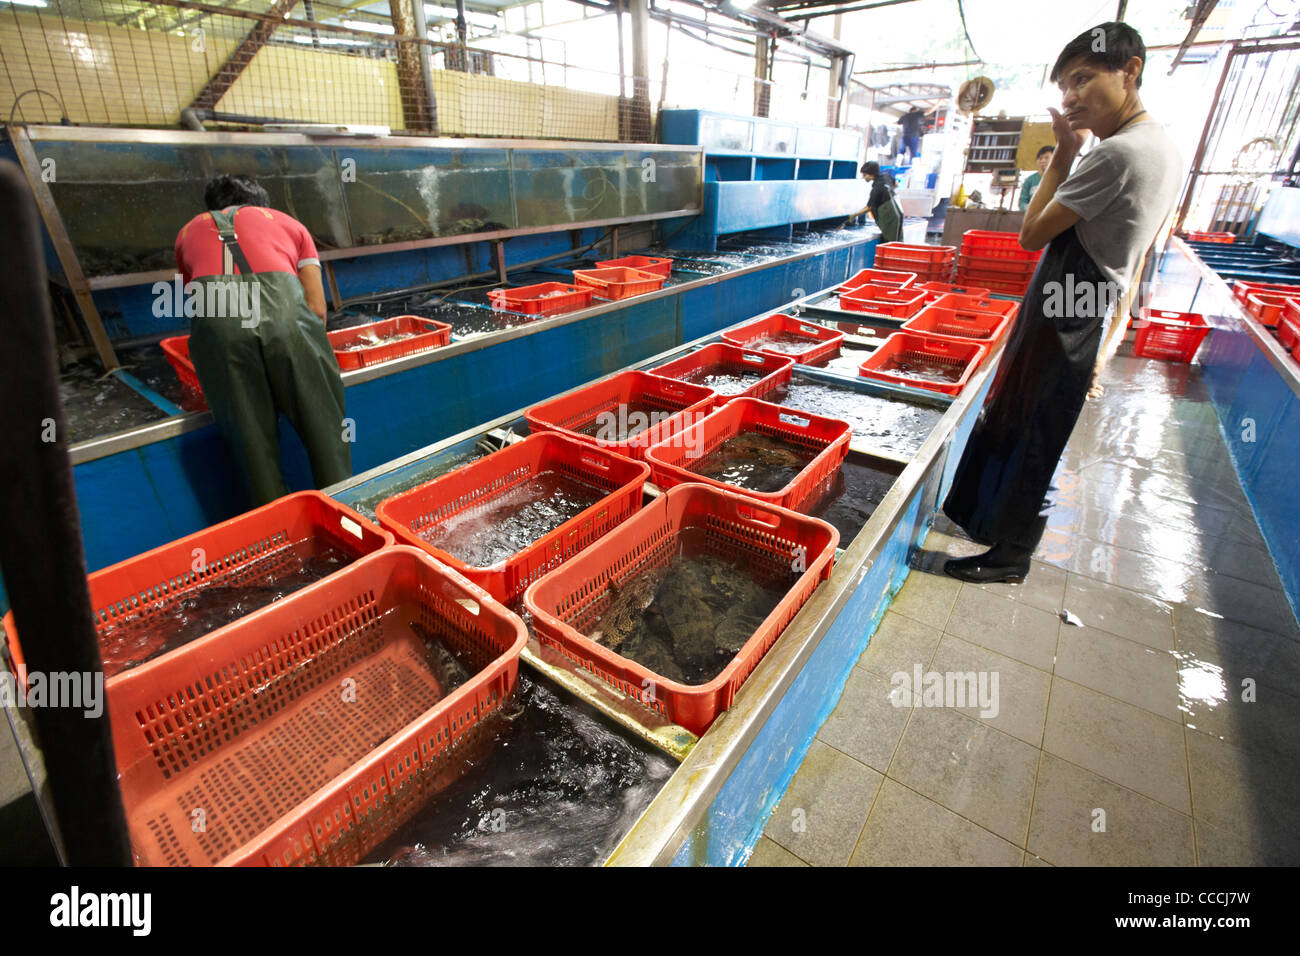 workers sort through large seawater tanks with live fish in aberdeen wholesale fish and seafood market hong kong - Stock Image